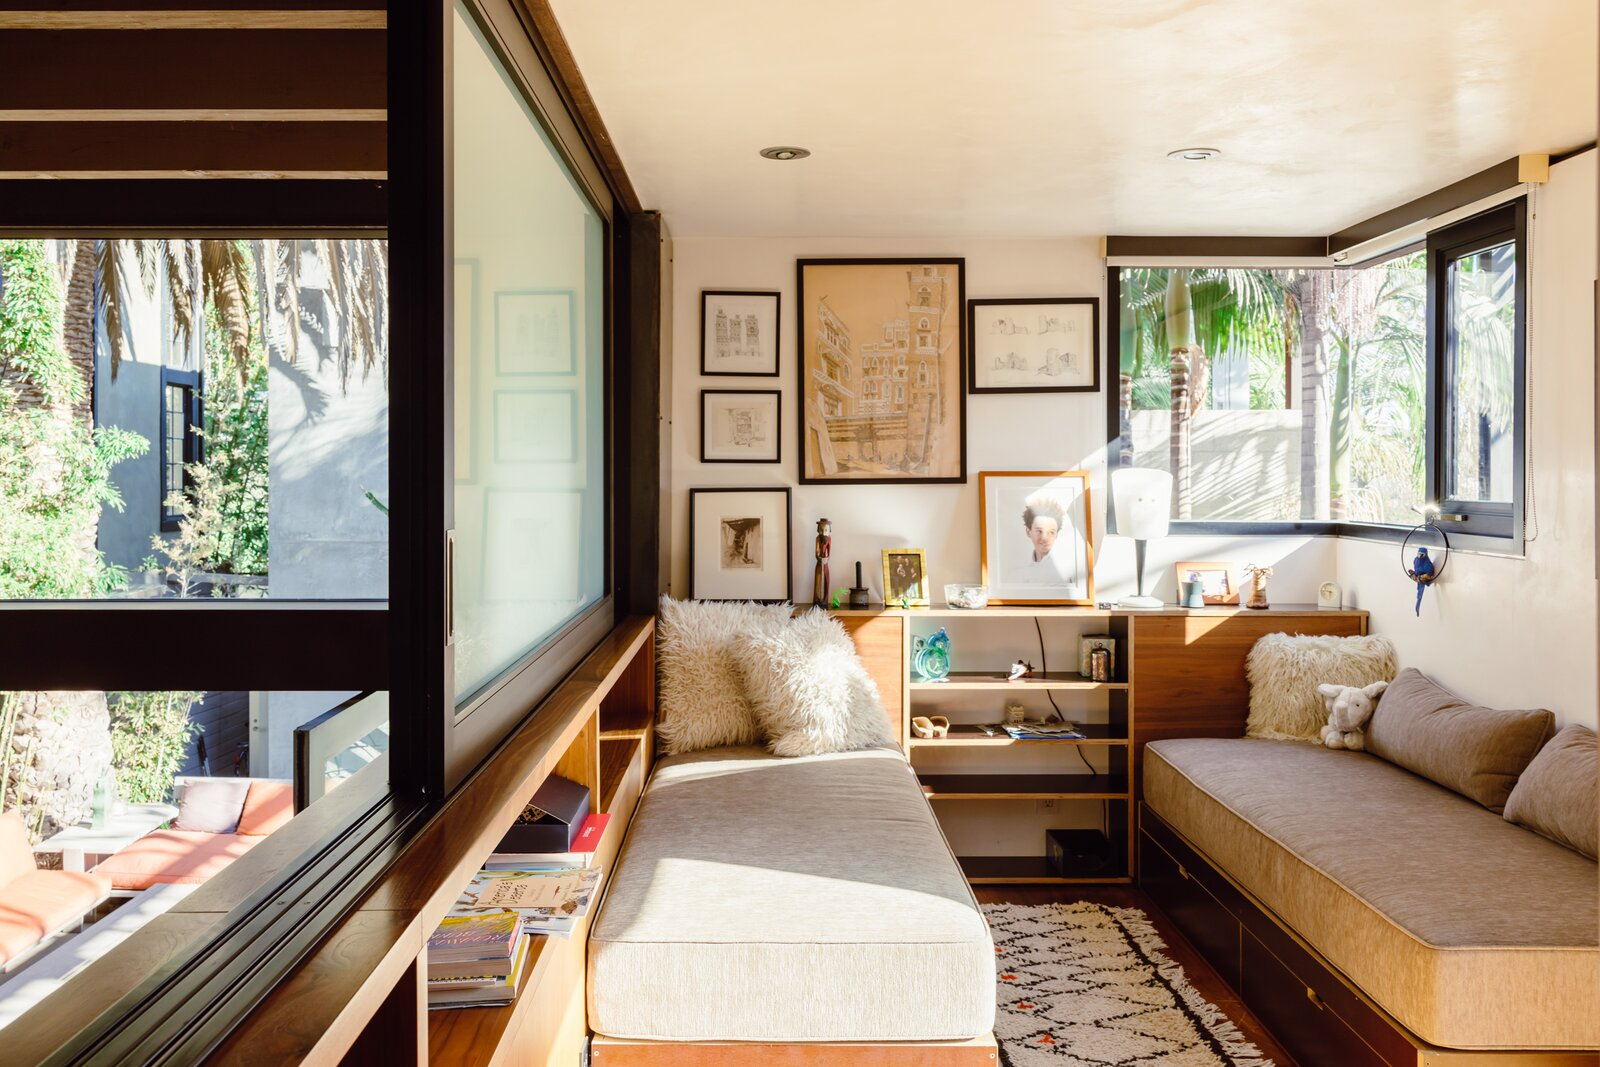 700 Palms guest room